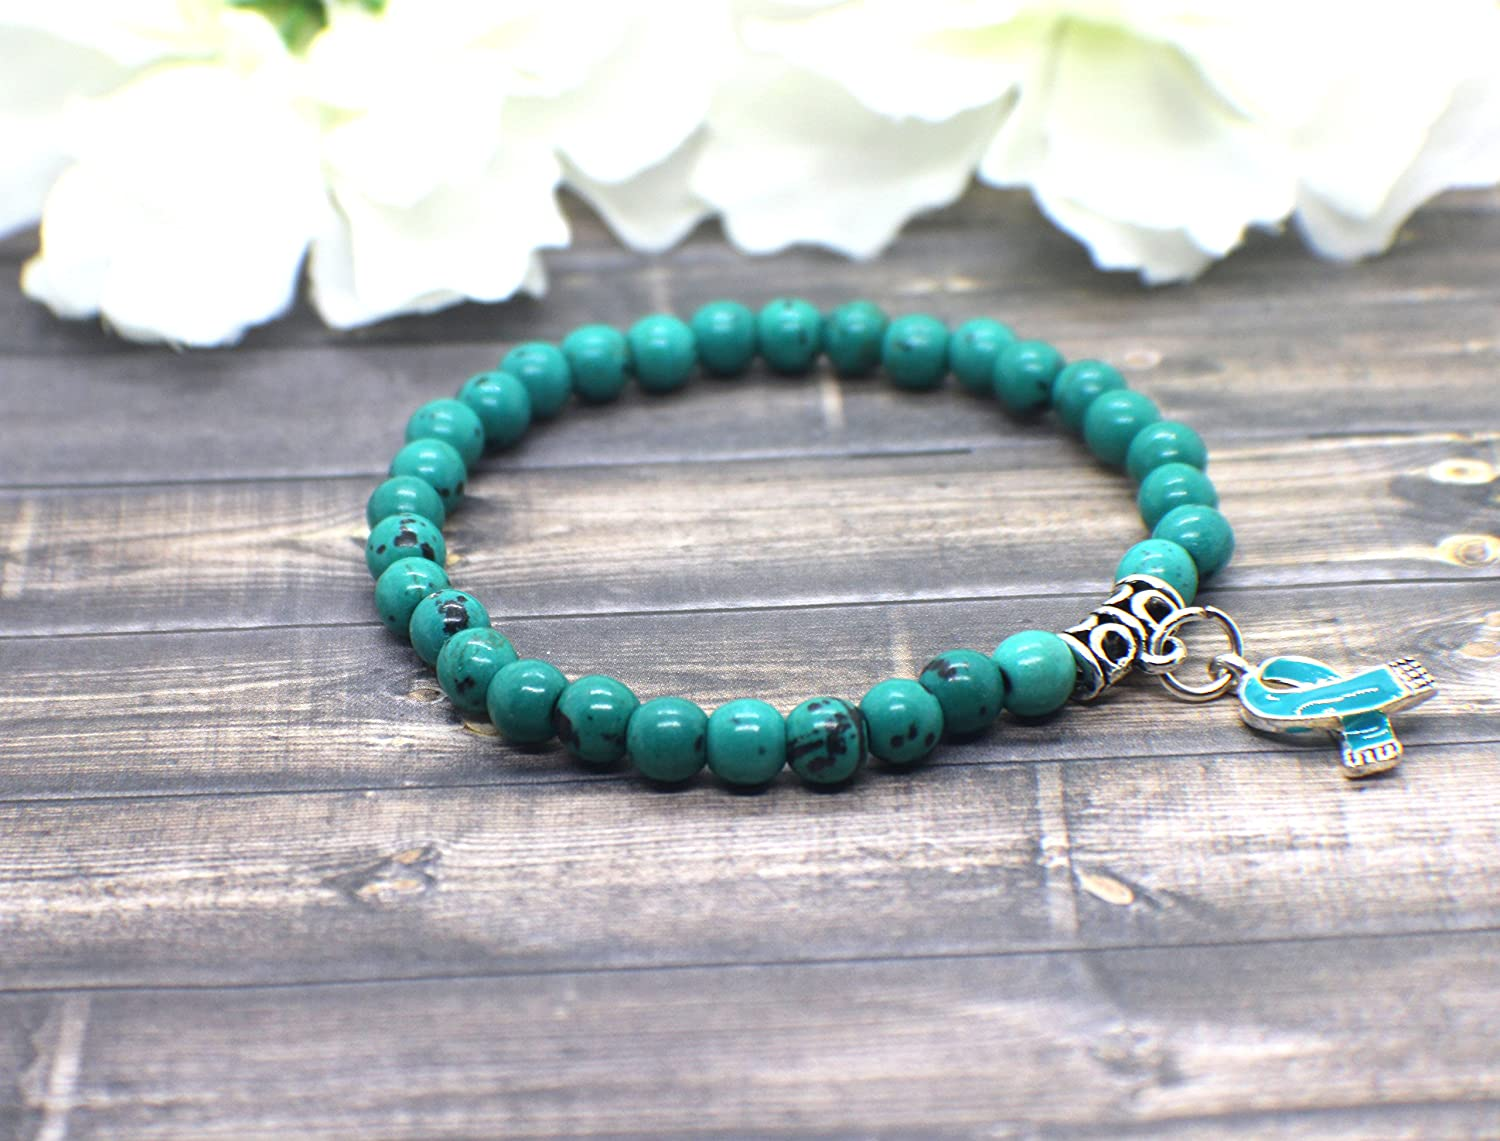 realize listing sg il description bracelet fullxfull peace awareness ribbon mgic en teal ocd